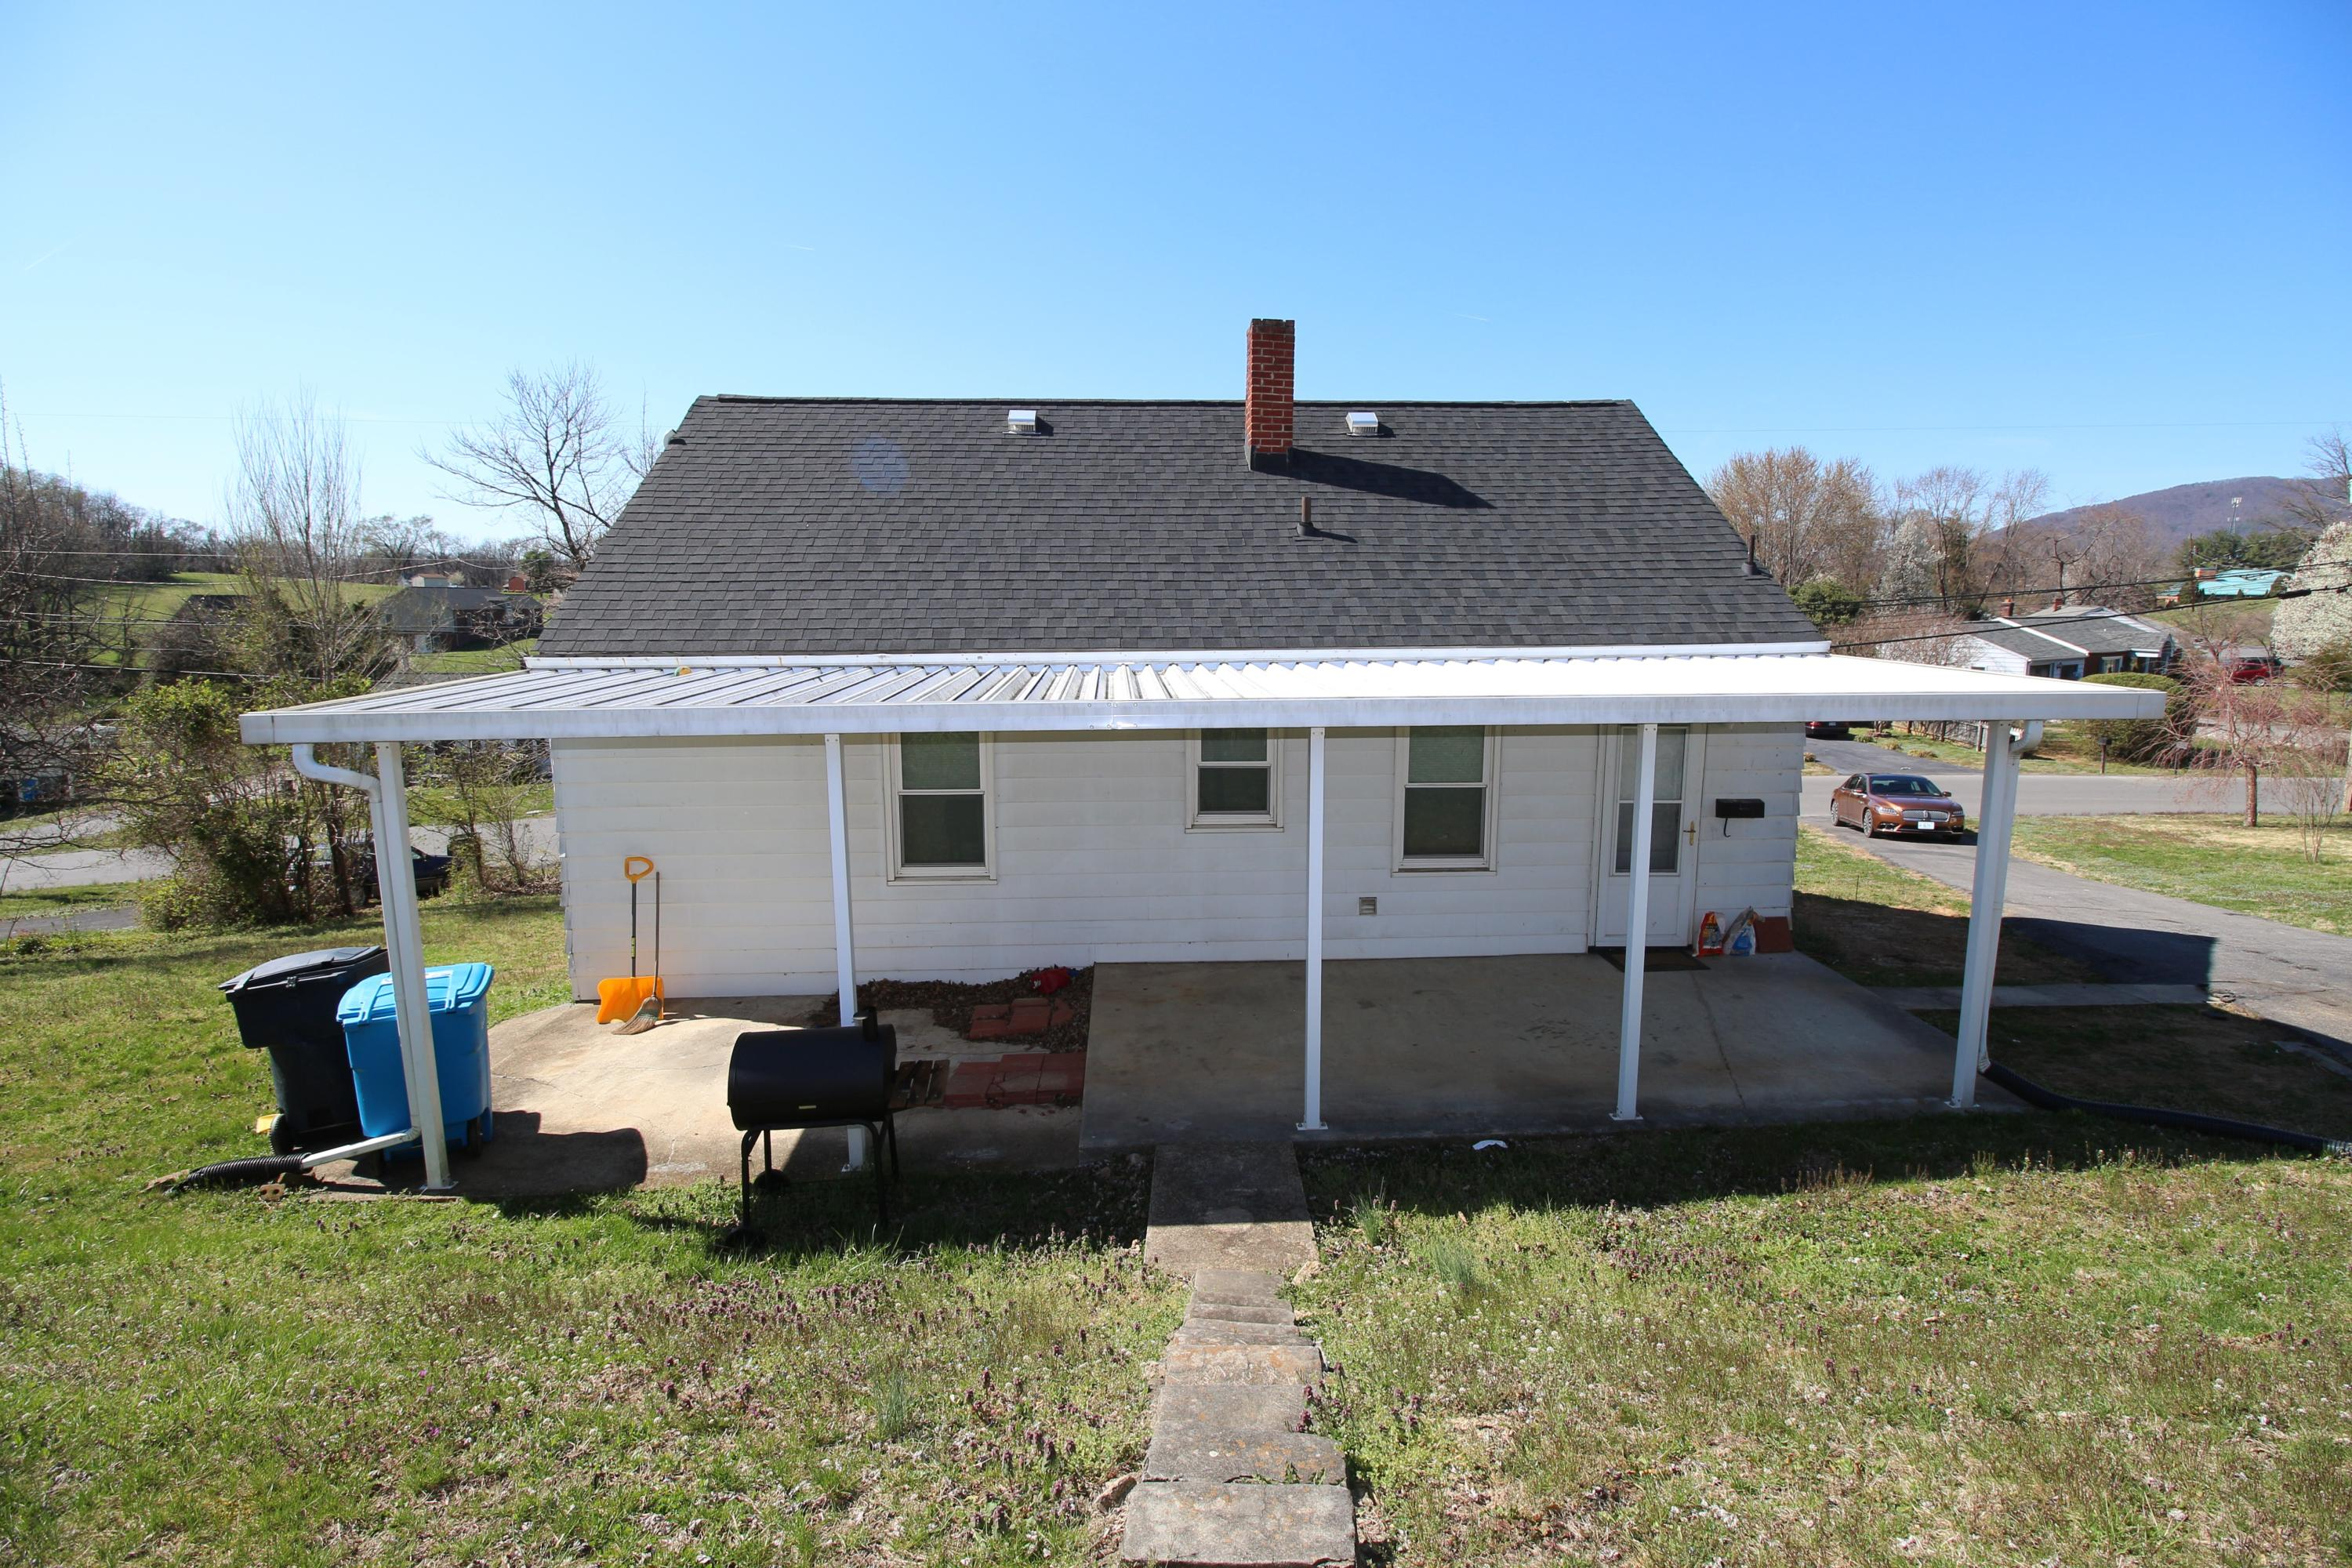 Additional photo for property listing at 2819 Cannaday Rd Roanoke, Virginia 24012 United States